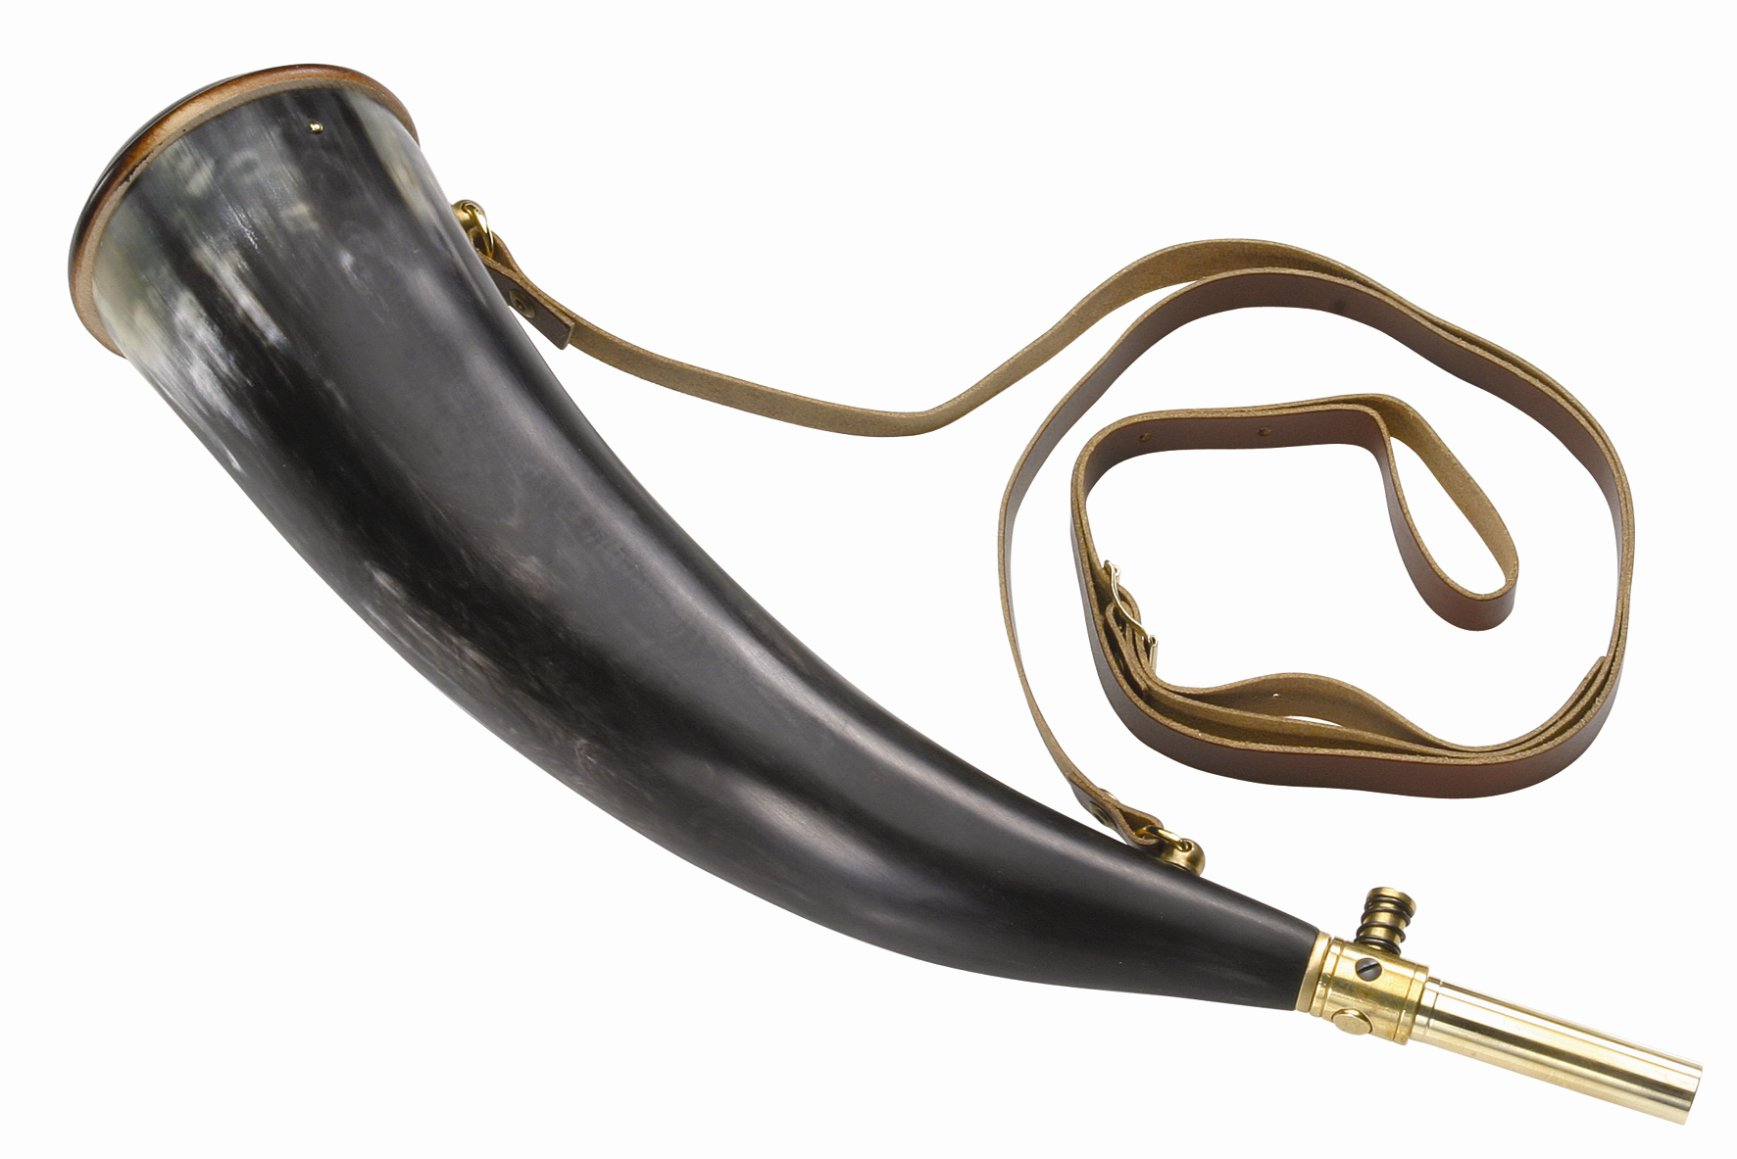 BIG POWDER HORN with shoulder strap